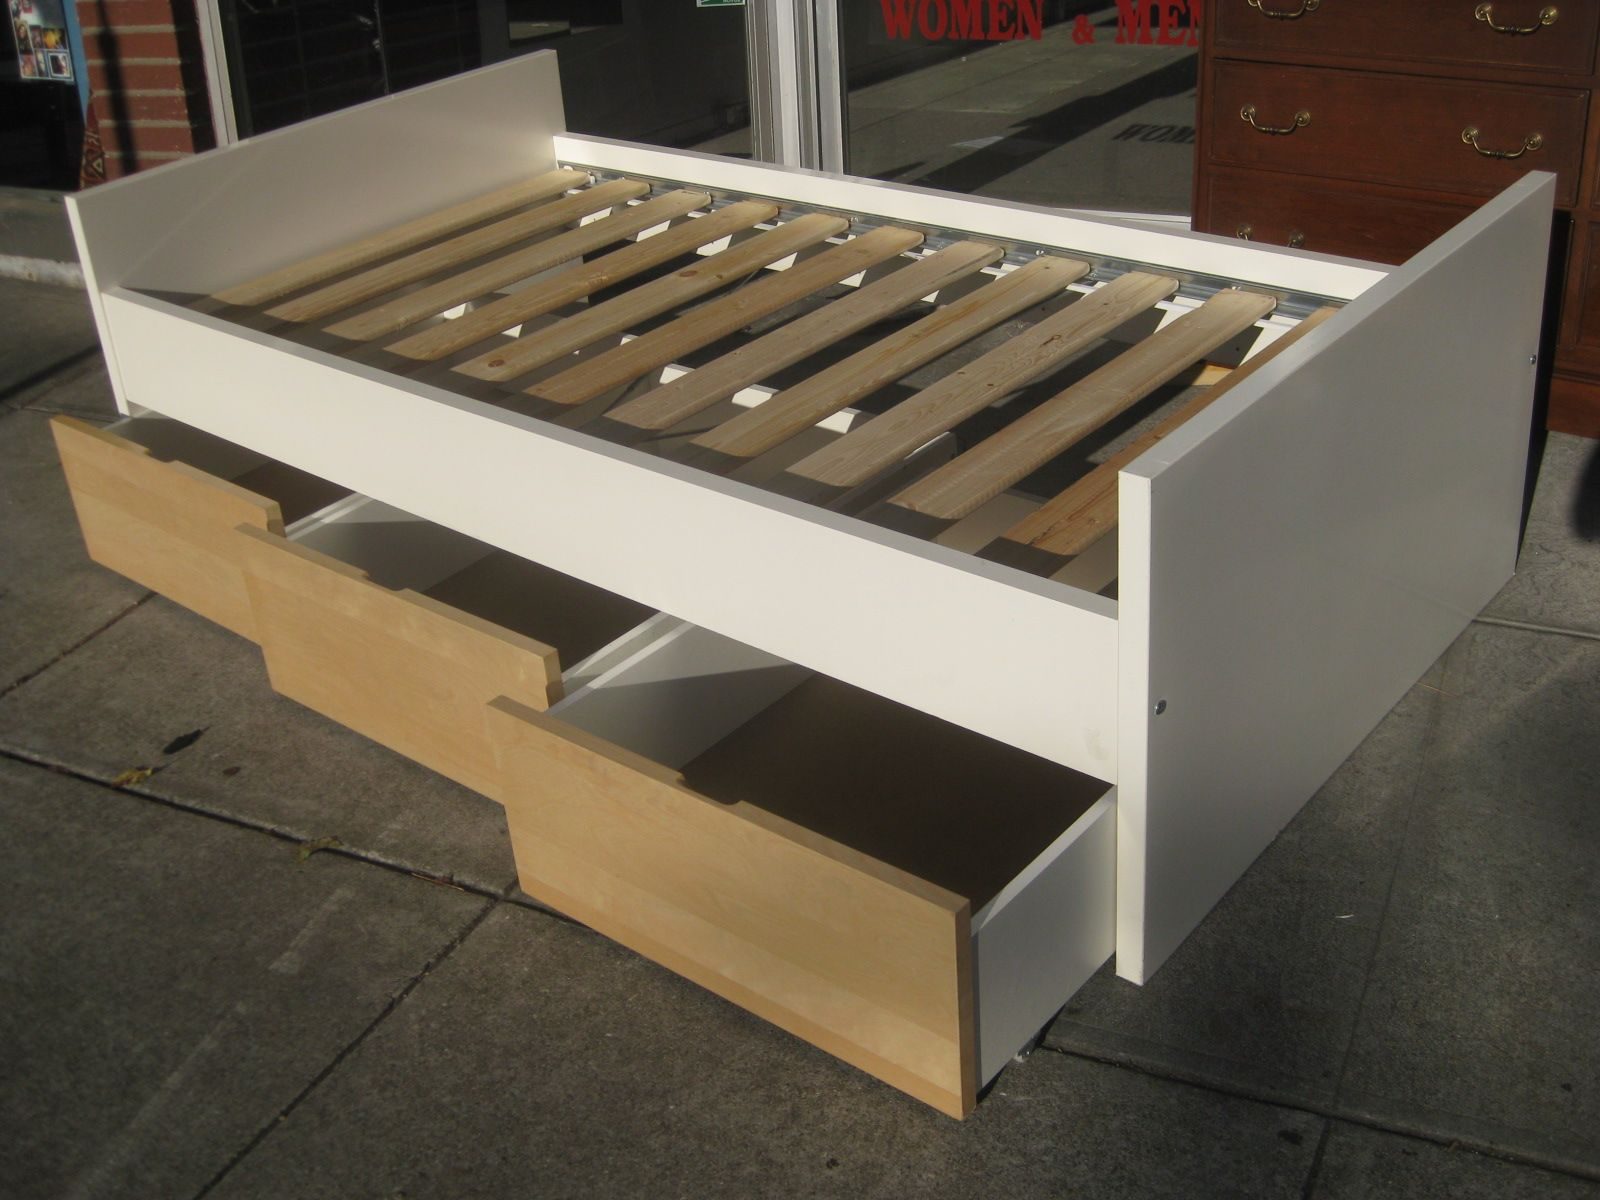 Sculpture Of Beds With Drawers Underneath Twin Bed With Drawers